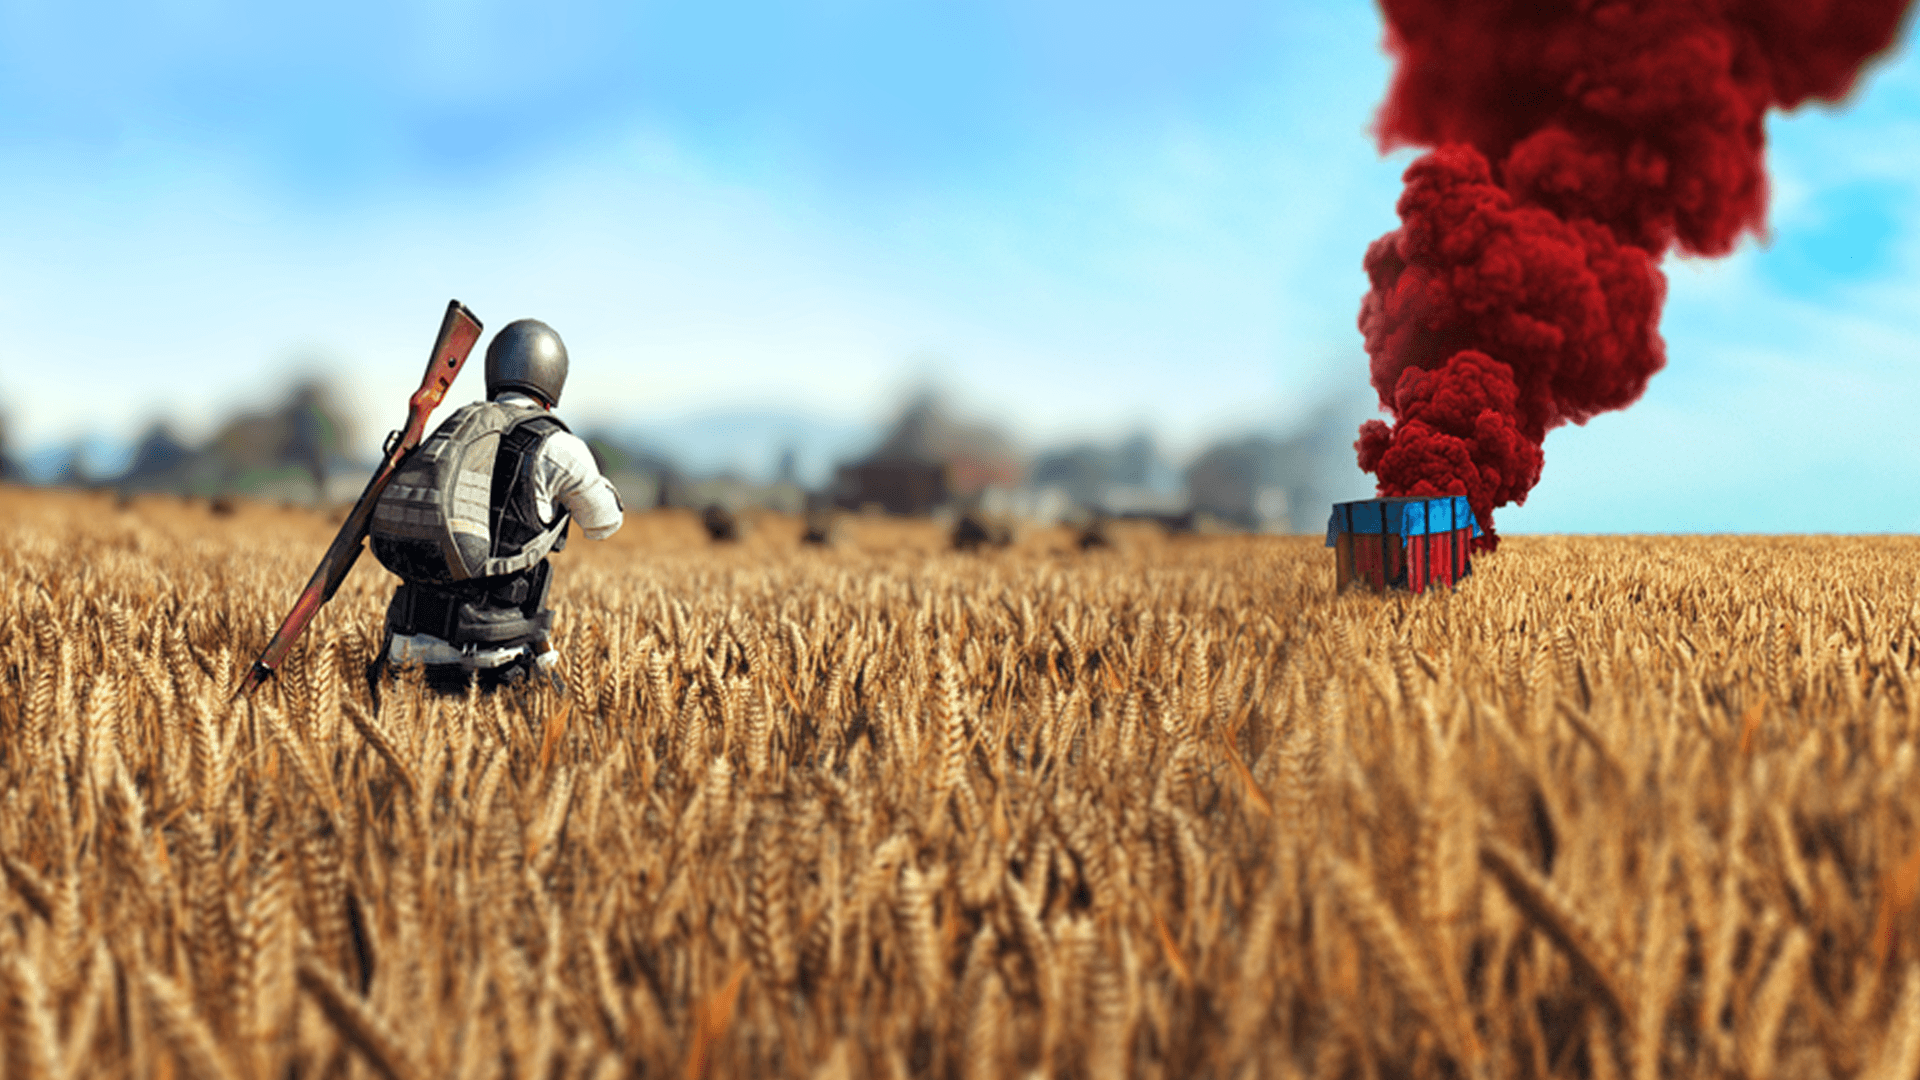 Pubg Wallpapers Hd 4k: PUBG Mobile Wallpapers